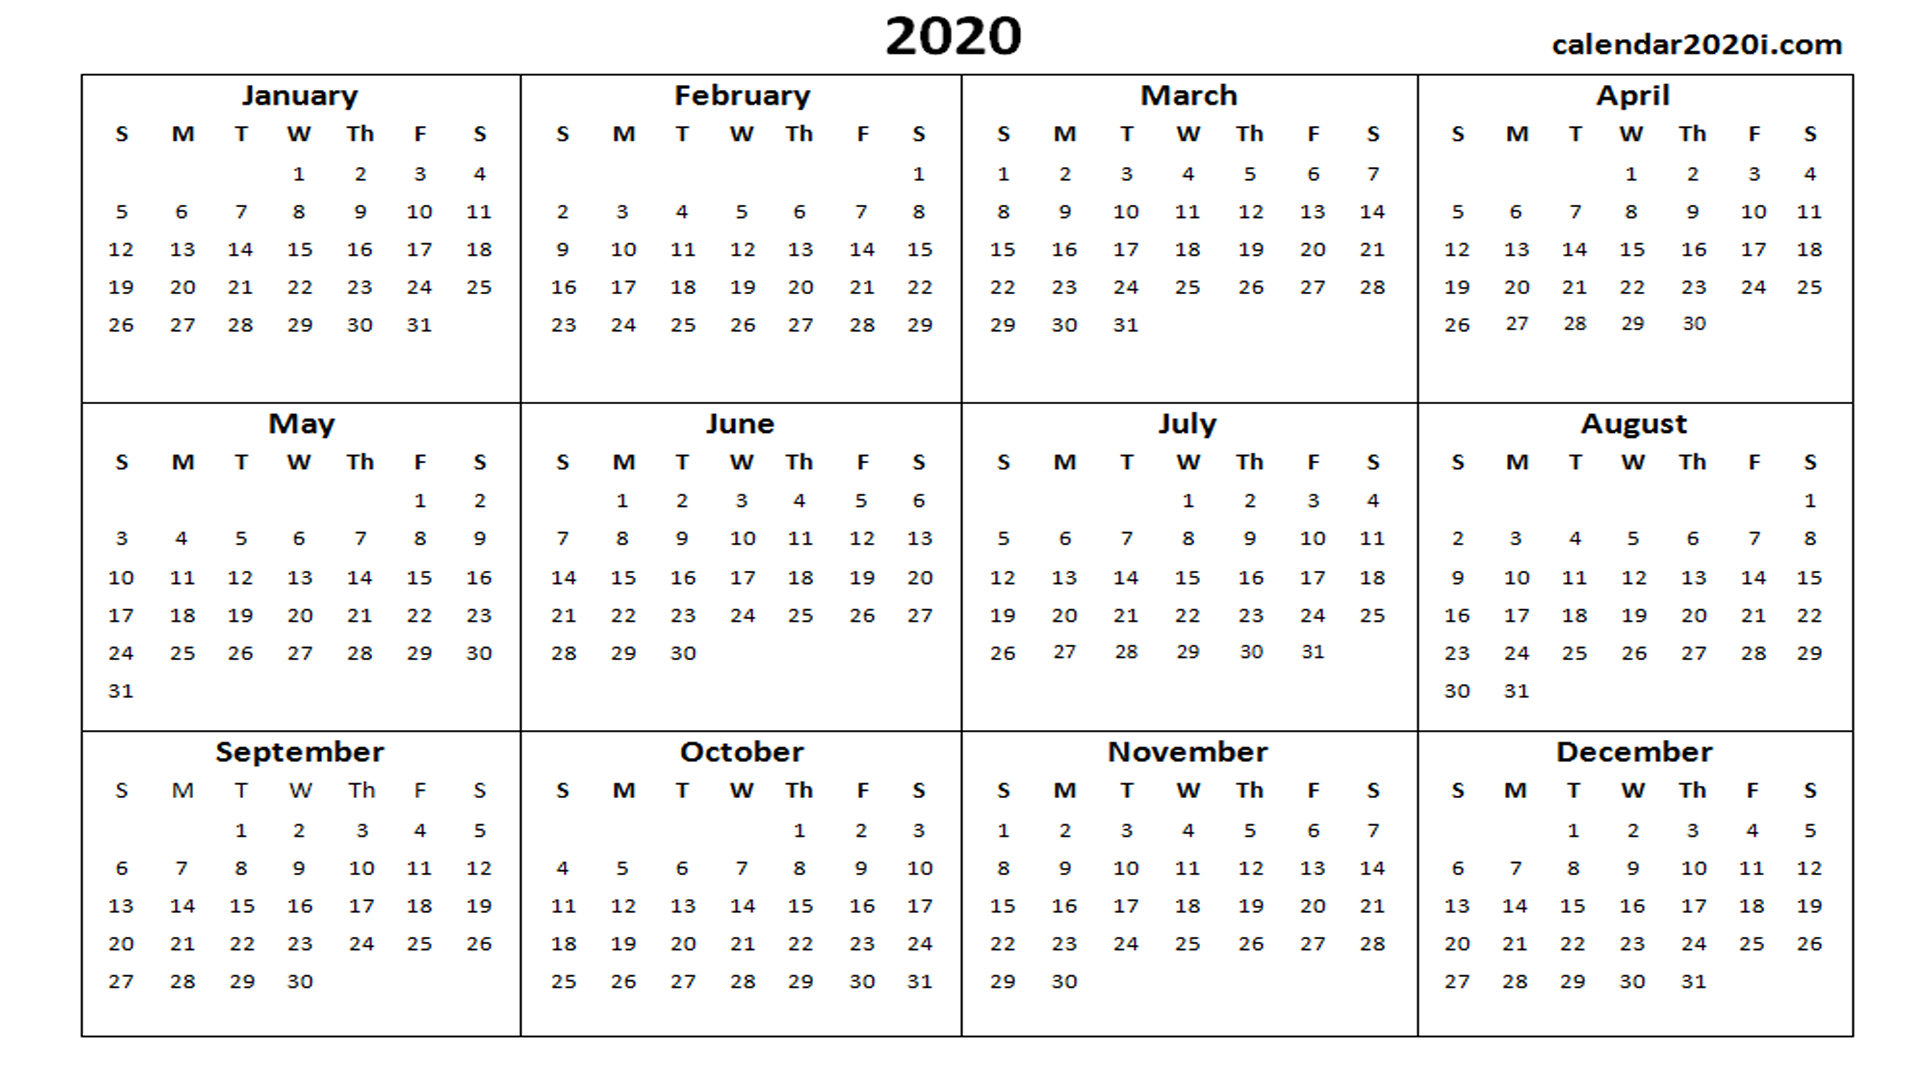 2020 Calendar Printable Template Holidays, Word, Excel, PDF, Wallpapers